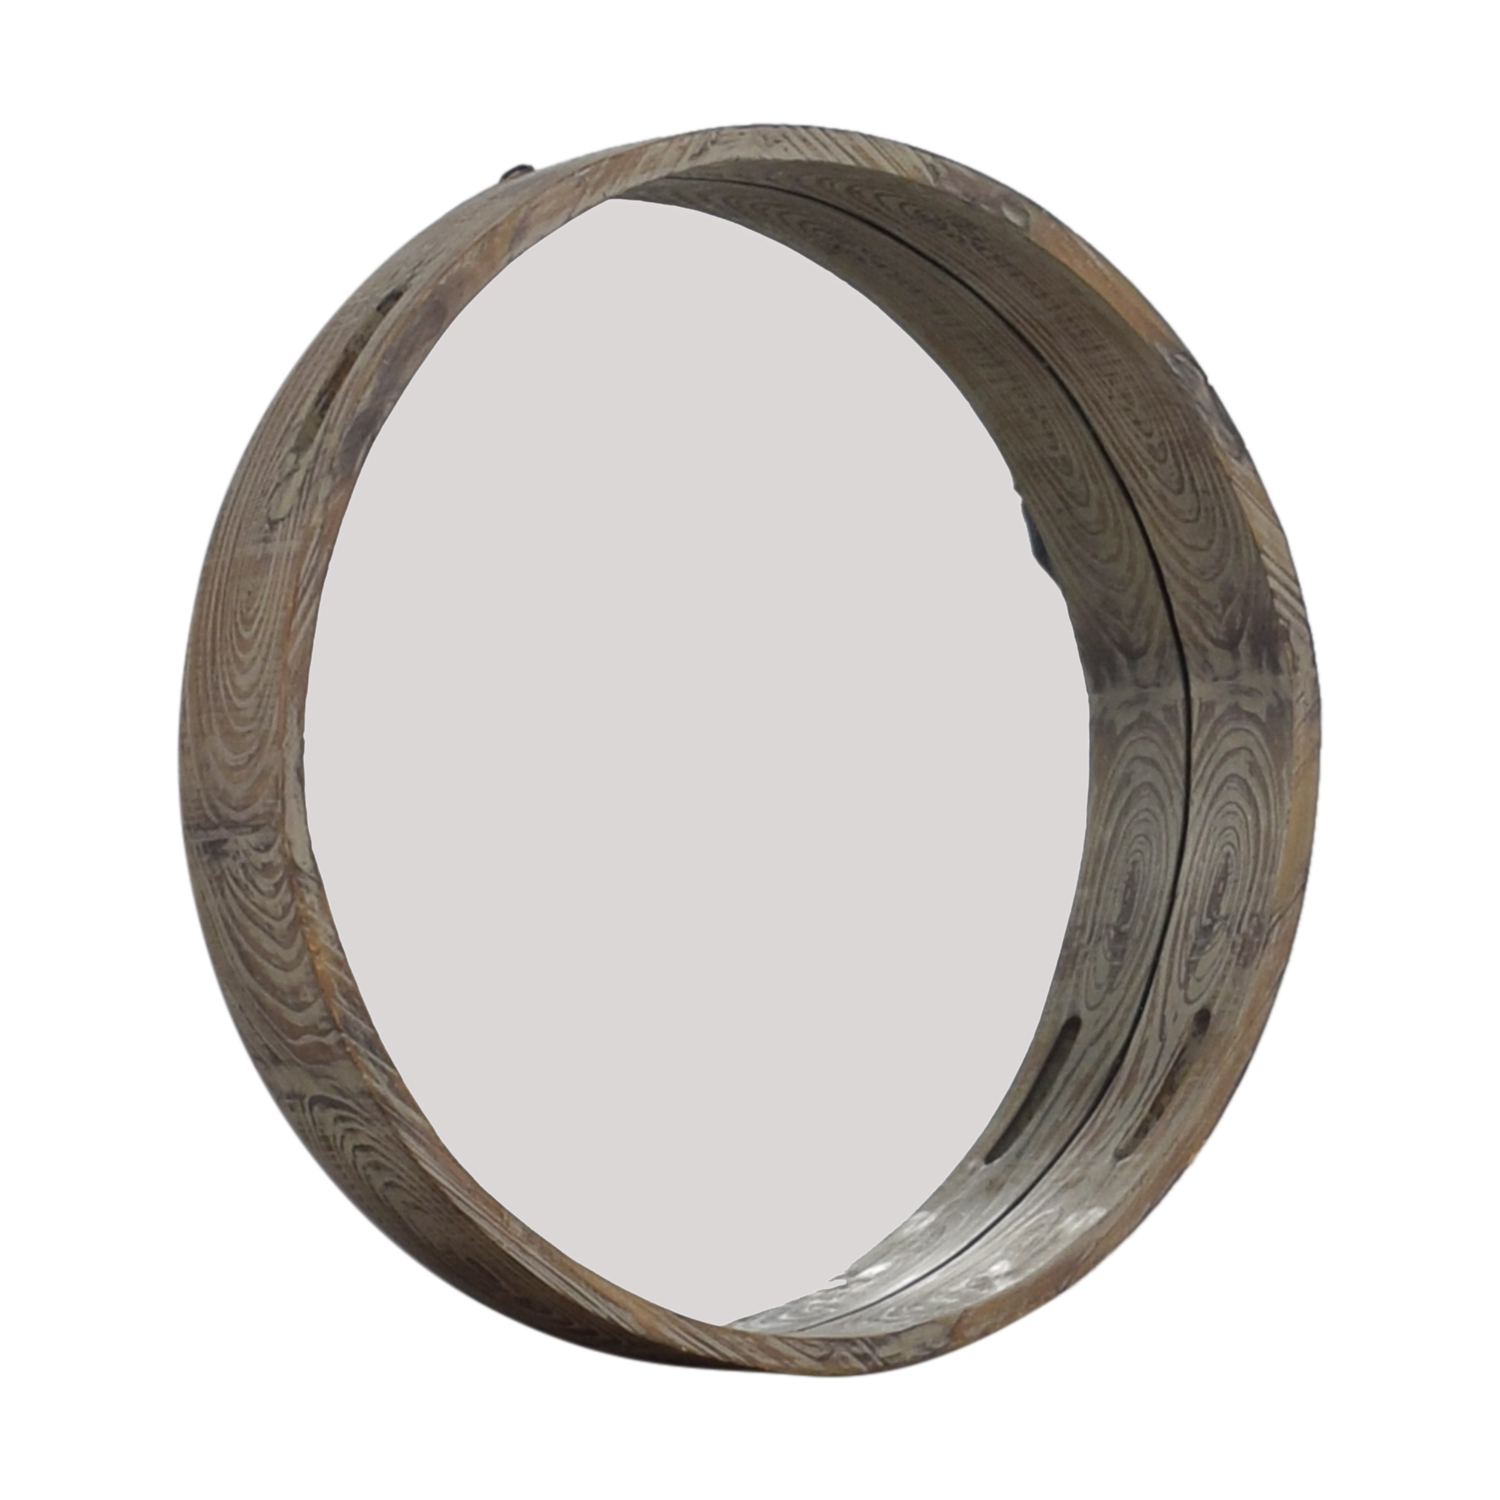 buy Mercana Industrial Deep Wood Inset Wall Mirror Mercana